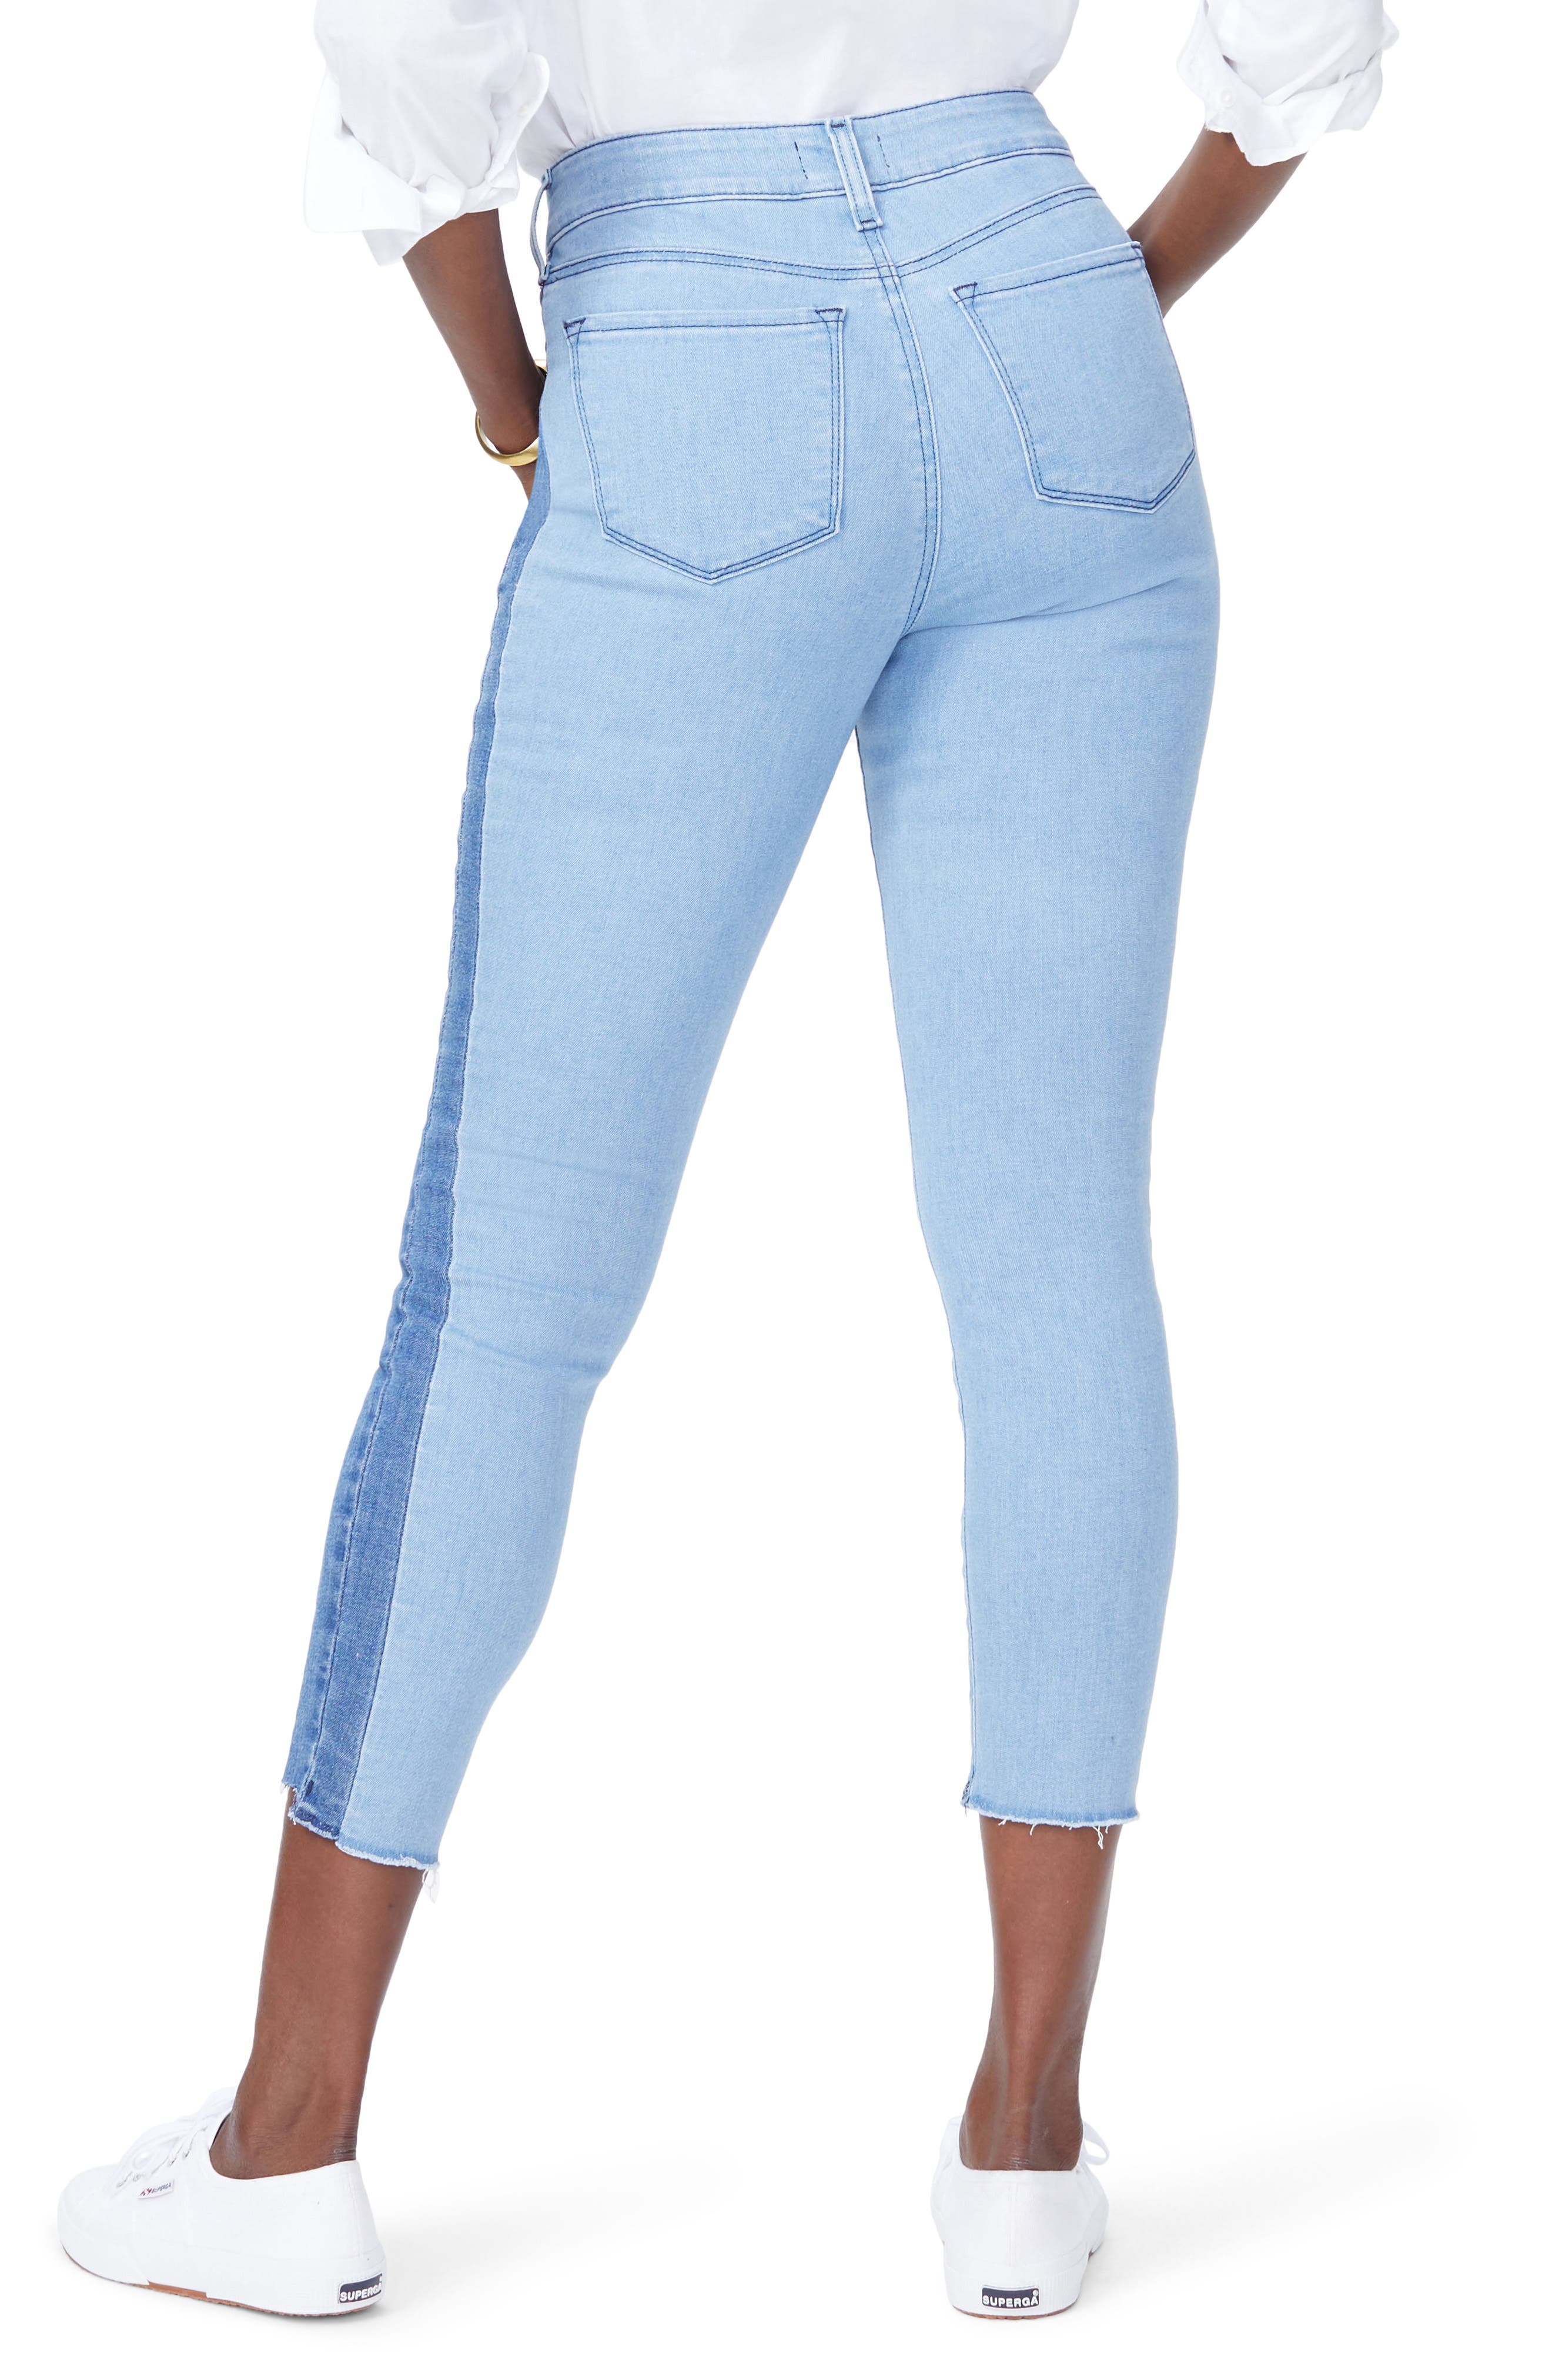 Ami Stretch Ankle Skinny Contrast Step Hem Jeans,                             Alternate thumbnail 3, color,                             Blissful